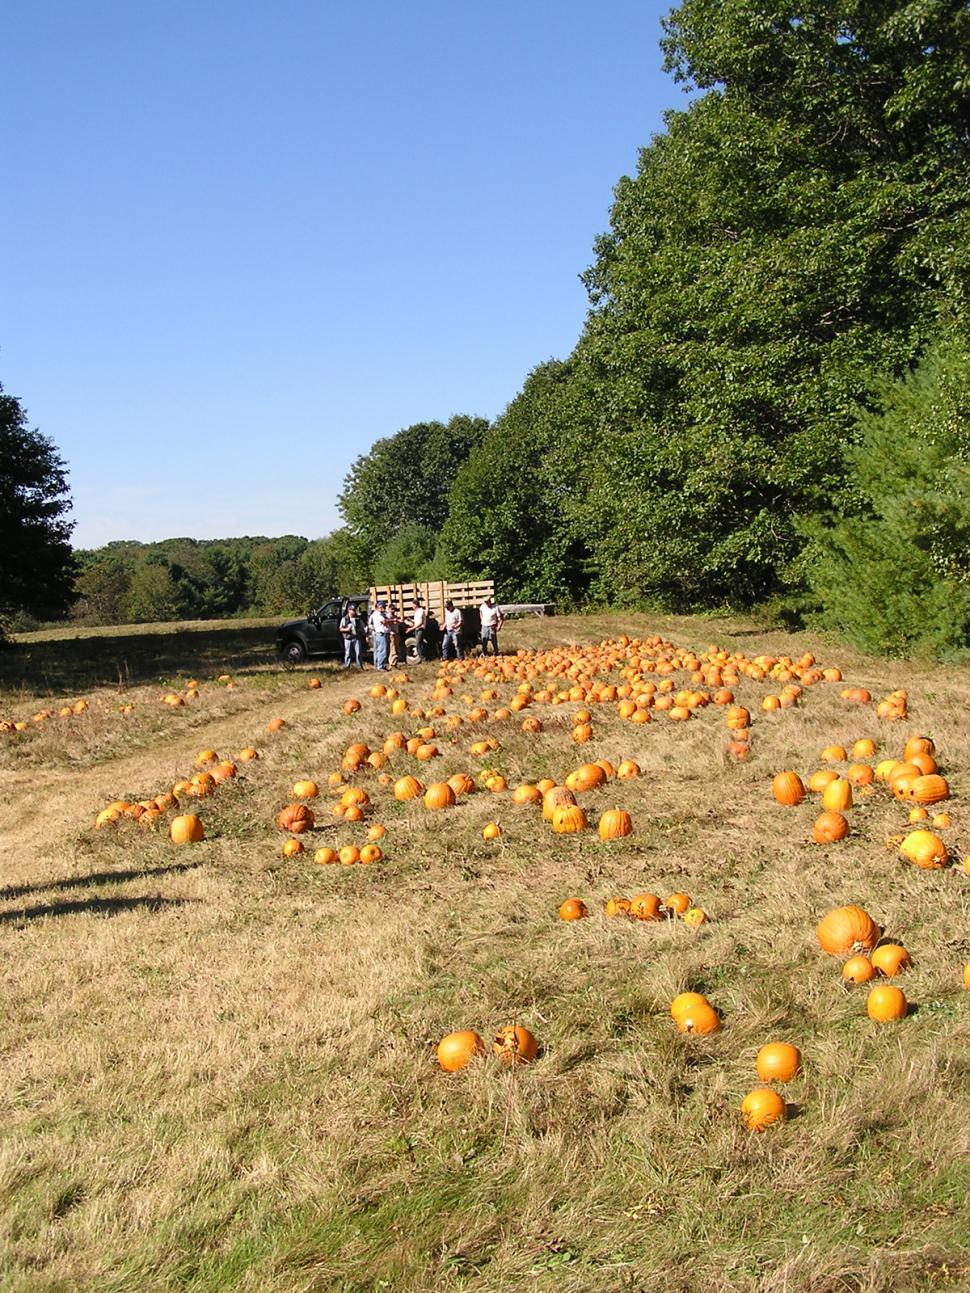 Download Free Stock HD Photo of Field of Pumpkins Online